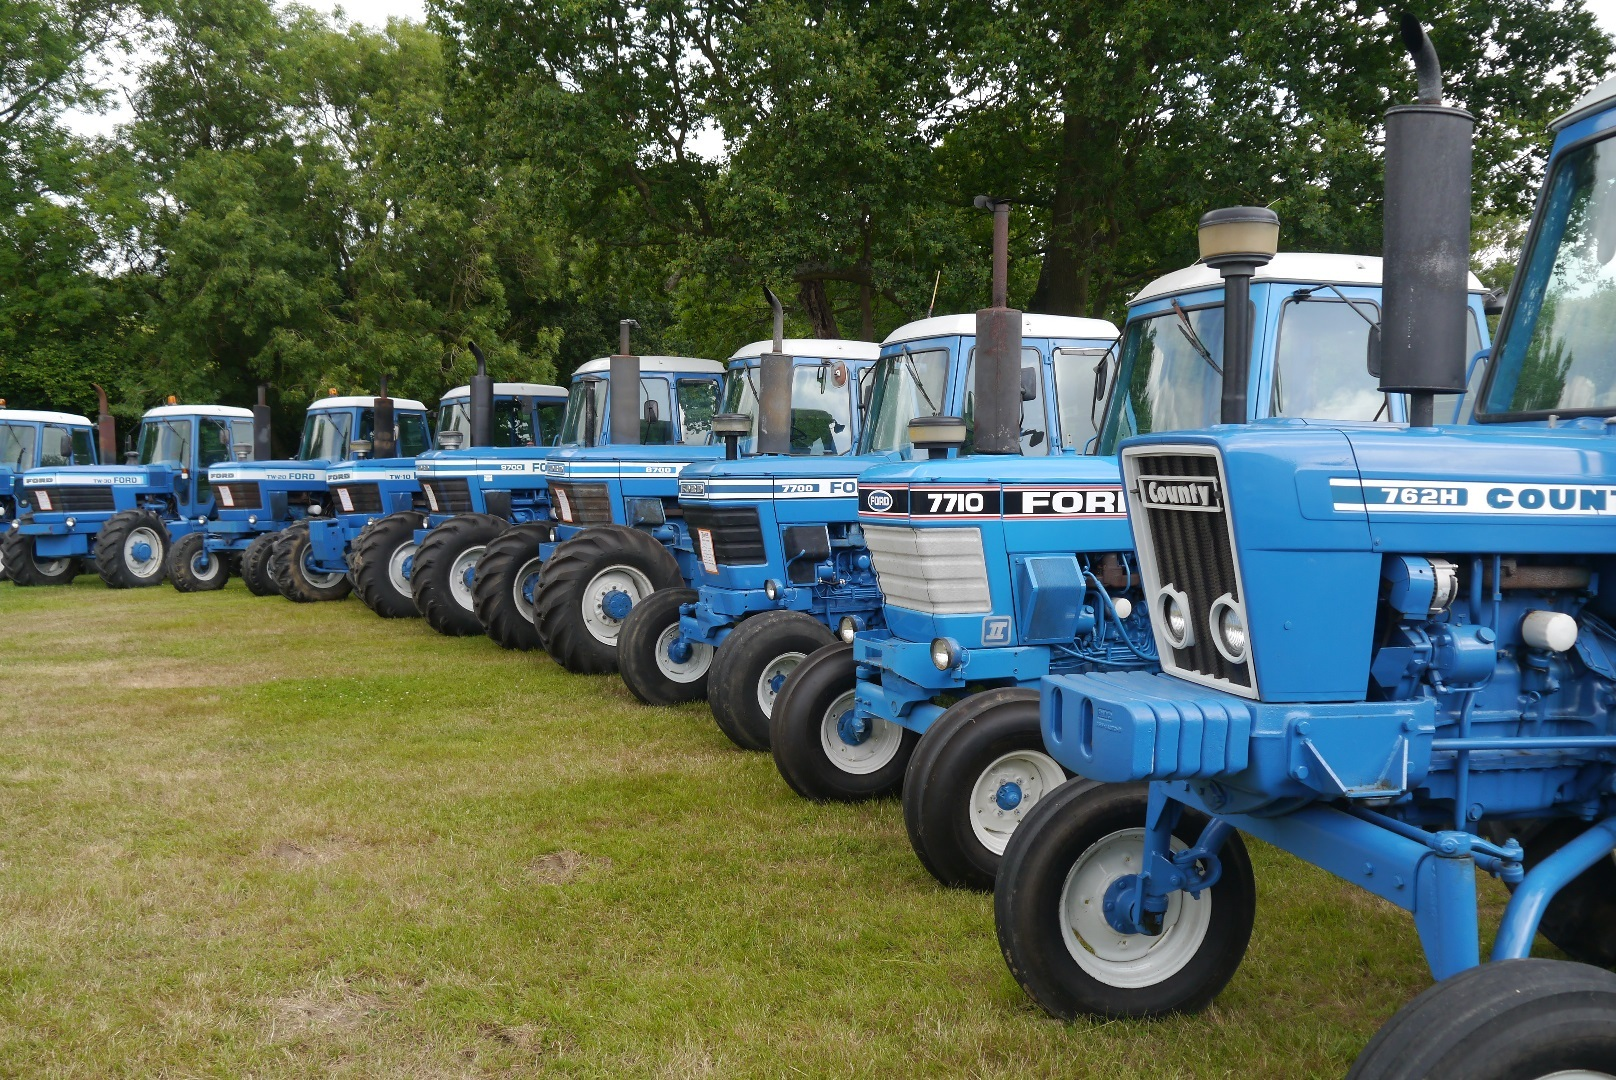 Som,e of the Paul Cable tractors for sale